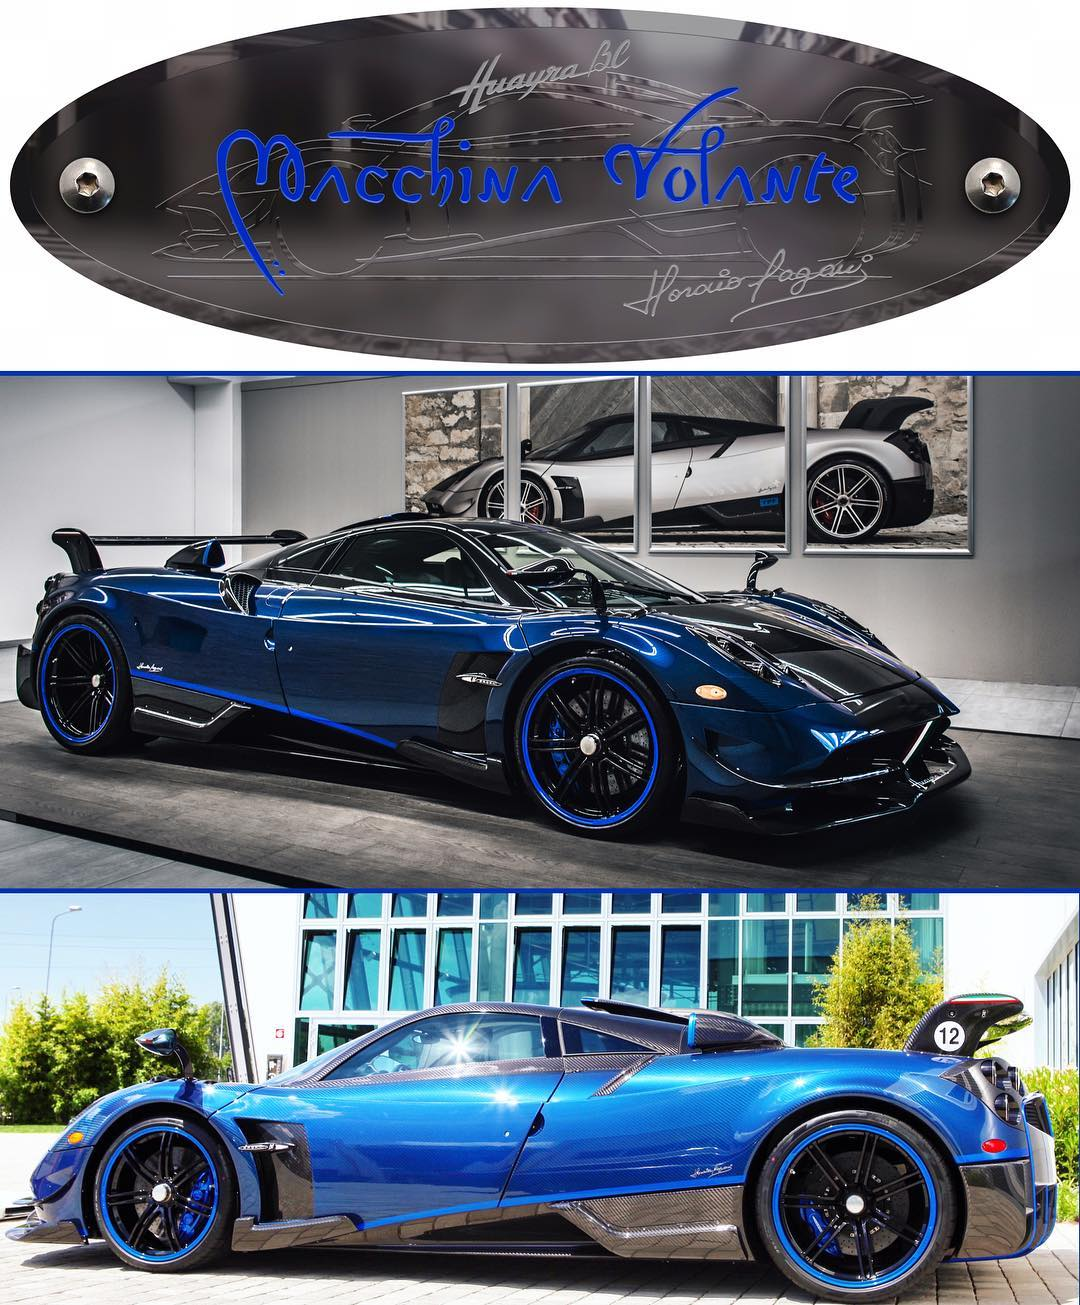 Pagani Huayra Bc For Sale Production 20 Cars: Special Pagani Huayra BC Macchina Volante Delivered To